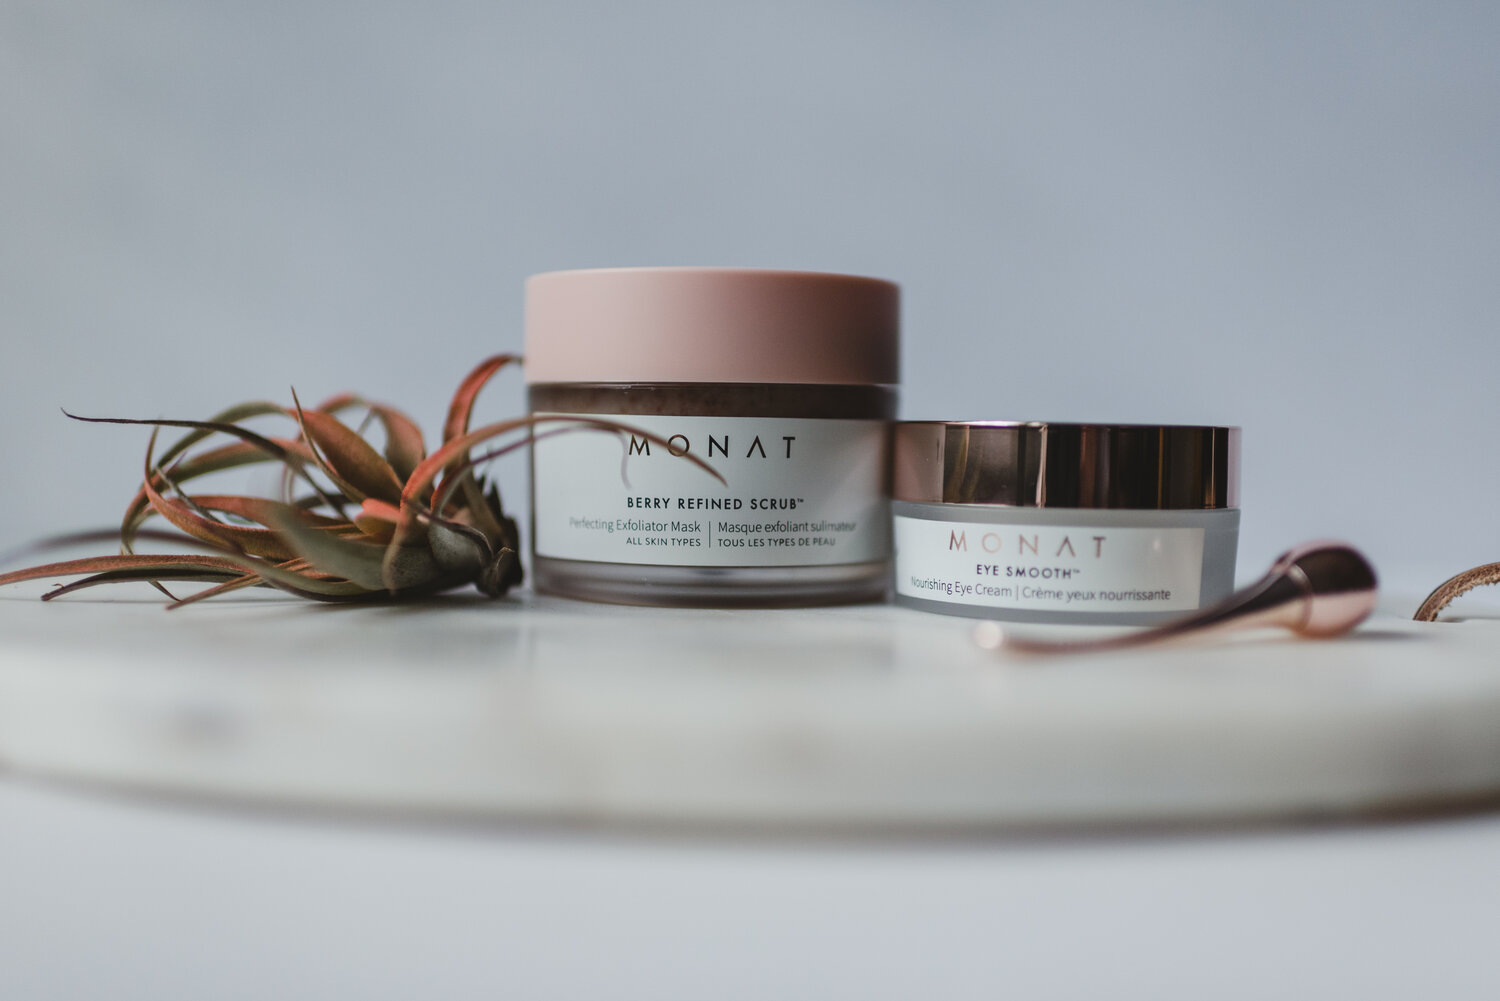 Monat S Naturally Based Anti Aging Skincare Line Monica Brown